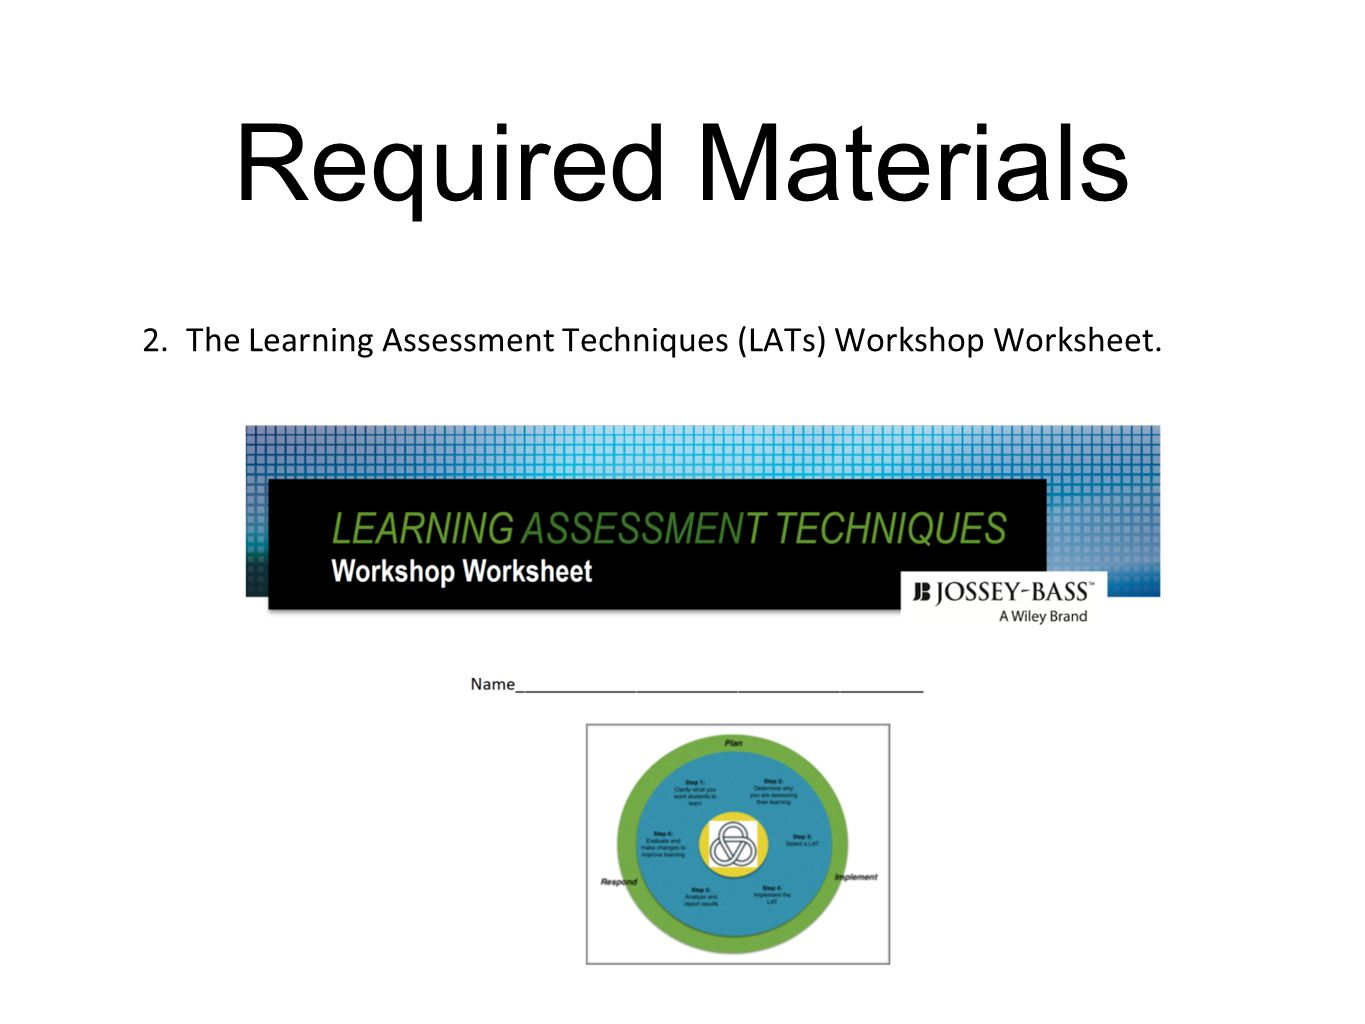 Learning Assessment Techniques Workshop